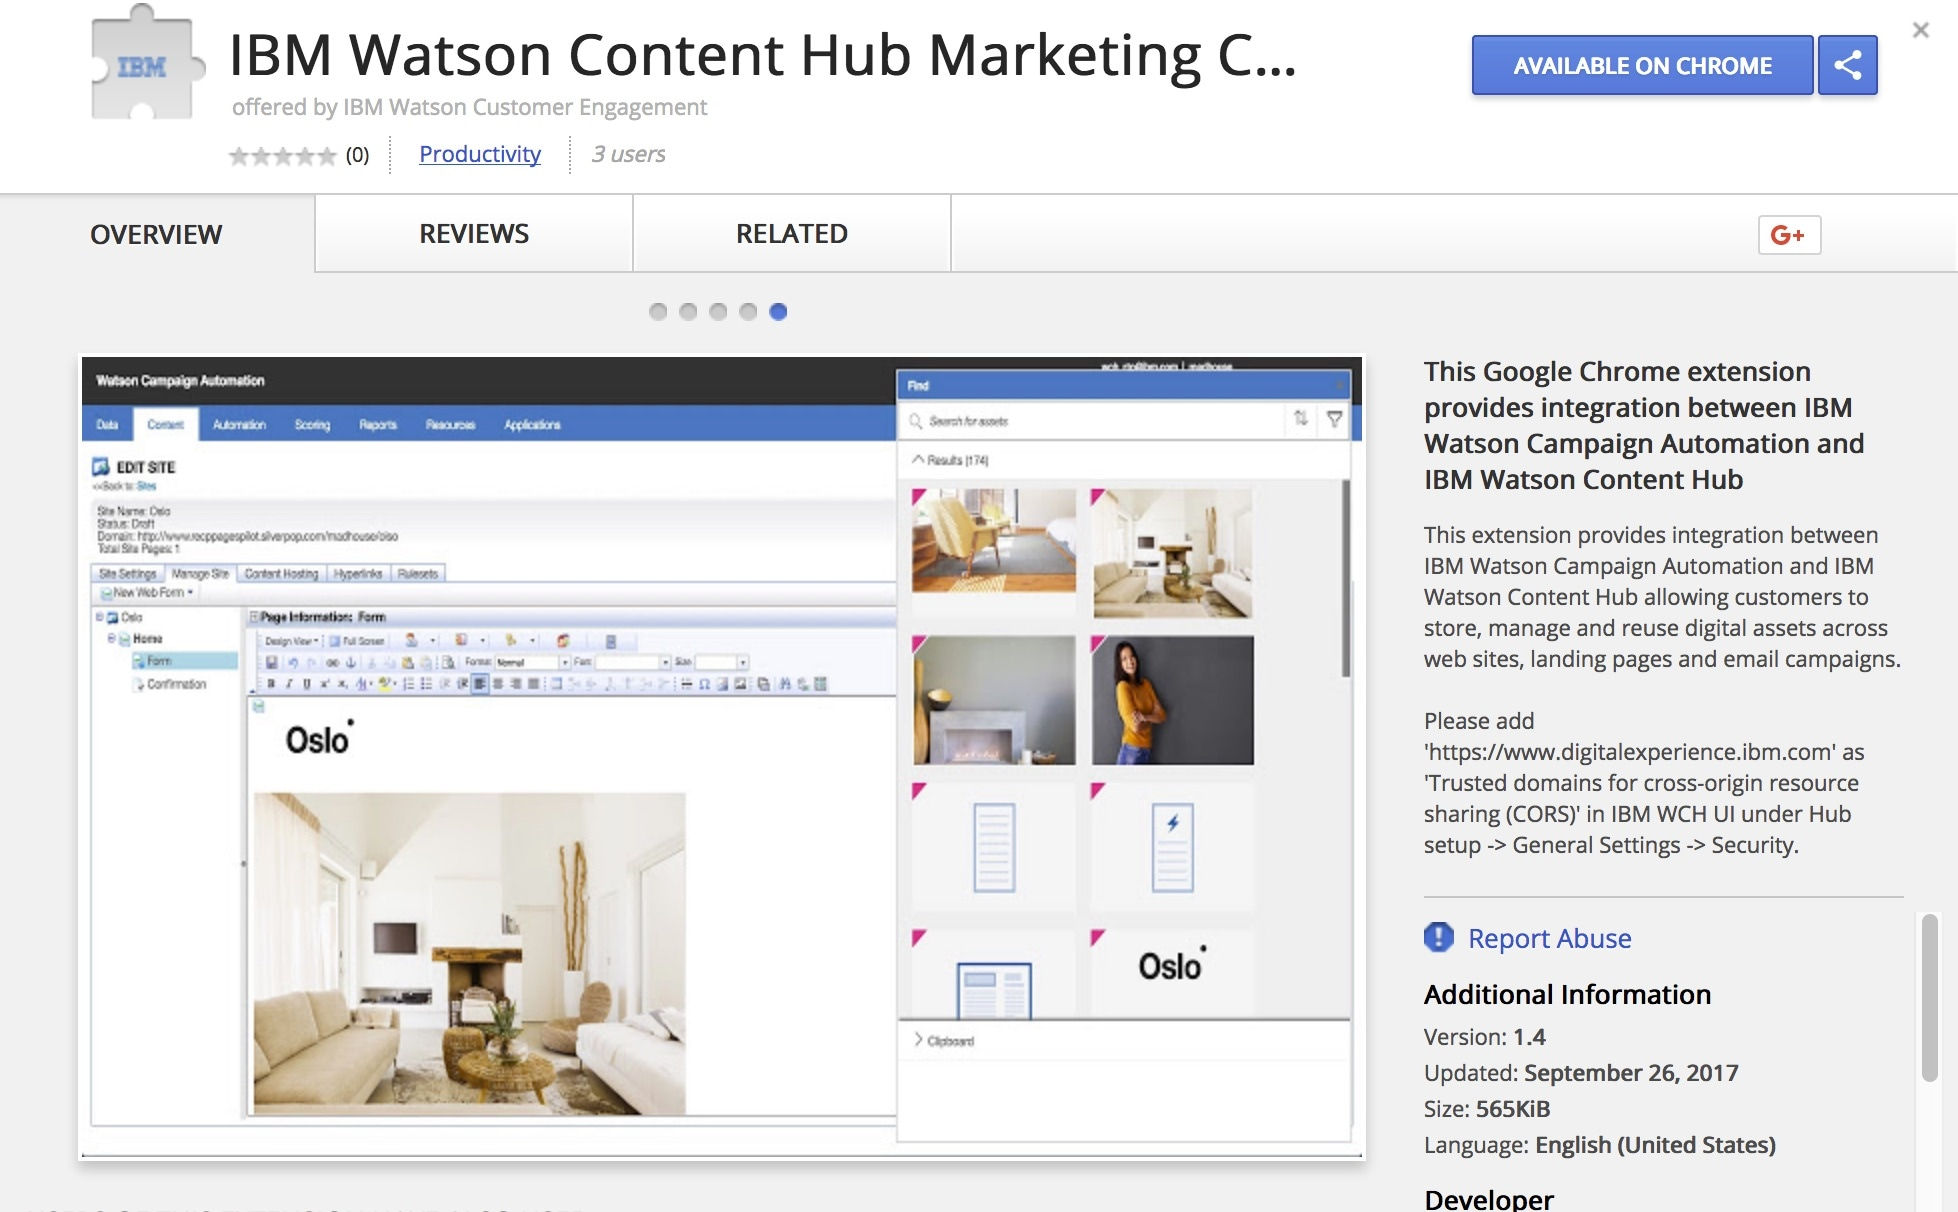 Watson Content Hub Overview